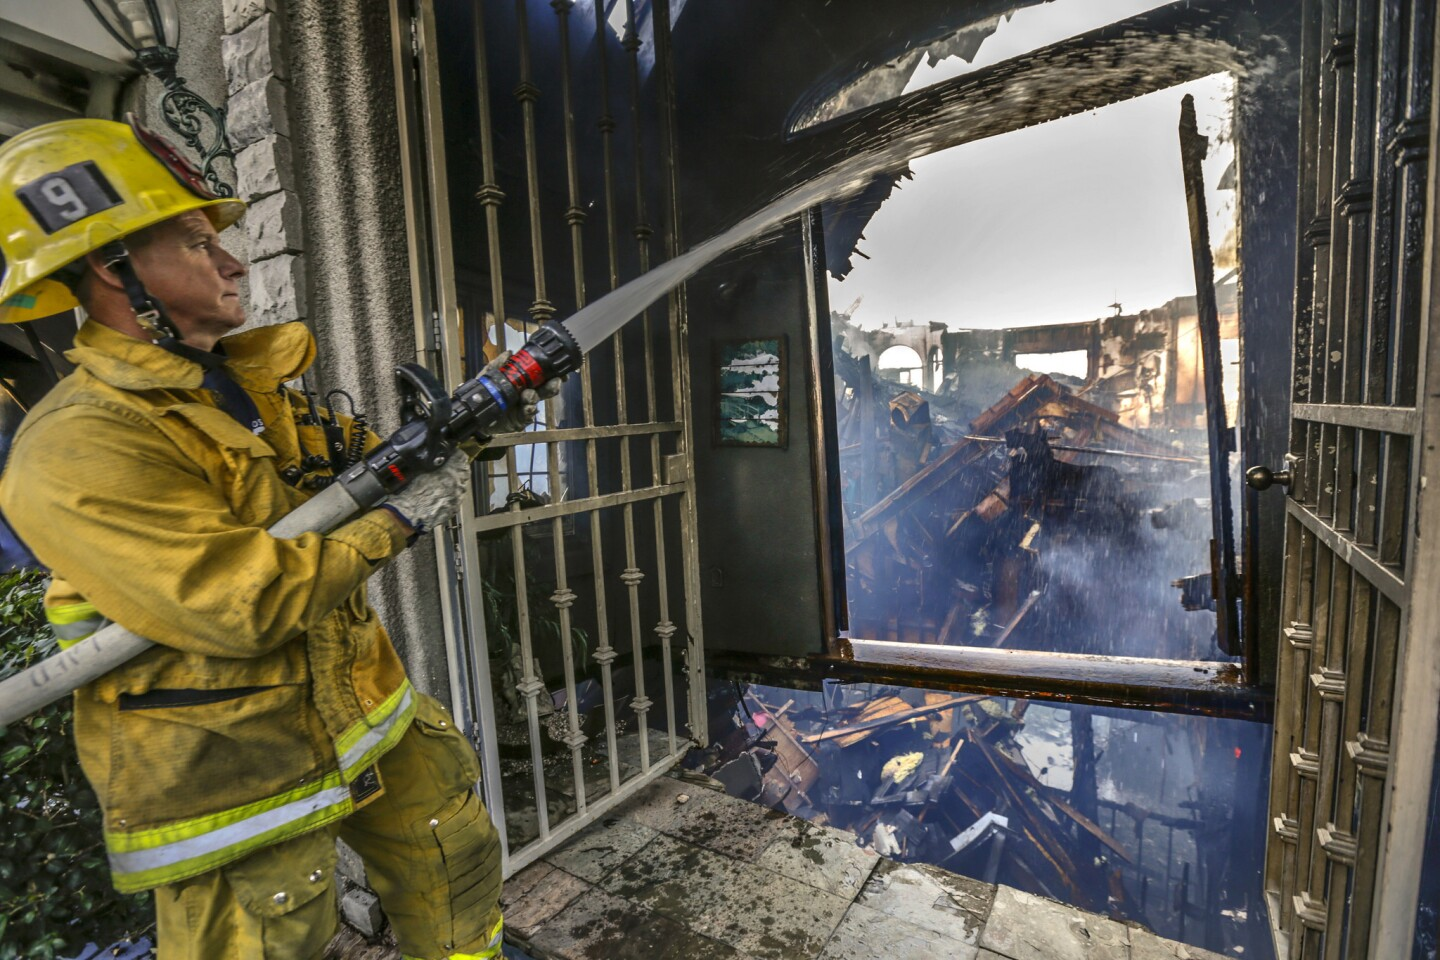 Firefighters continue housing down smoldering ruins after a fire tore through a large hillside home Thursday night in the Mt. Washington neighborhood of Los Angeles.